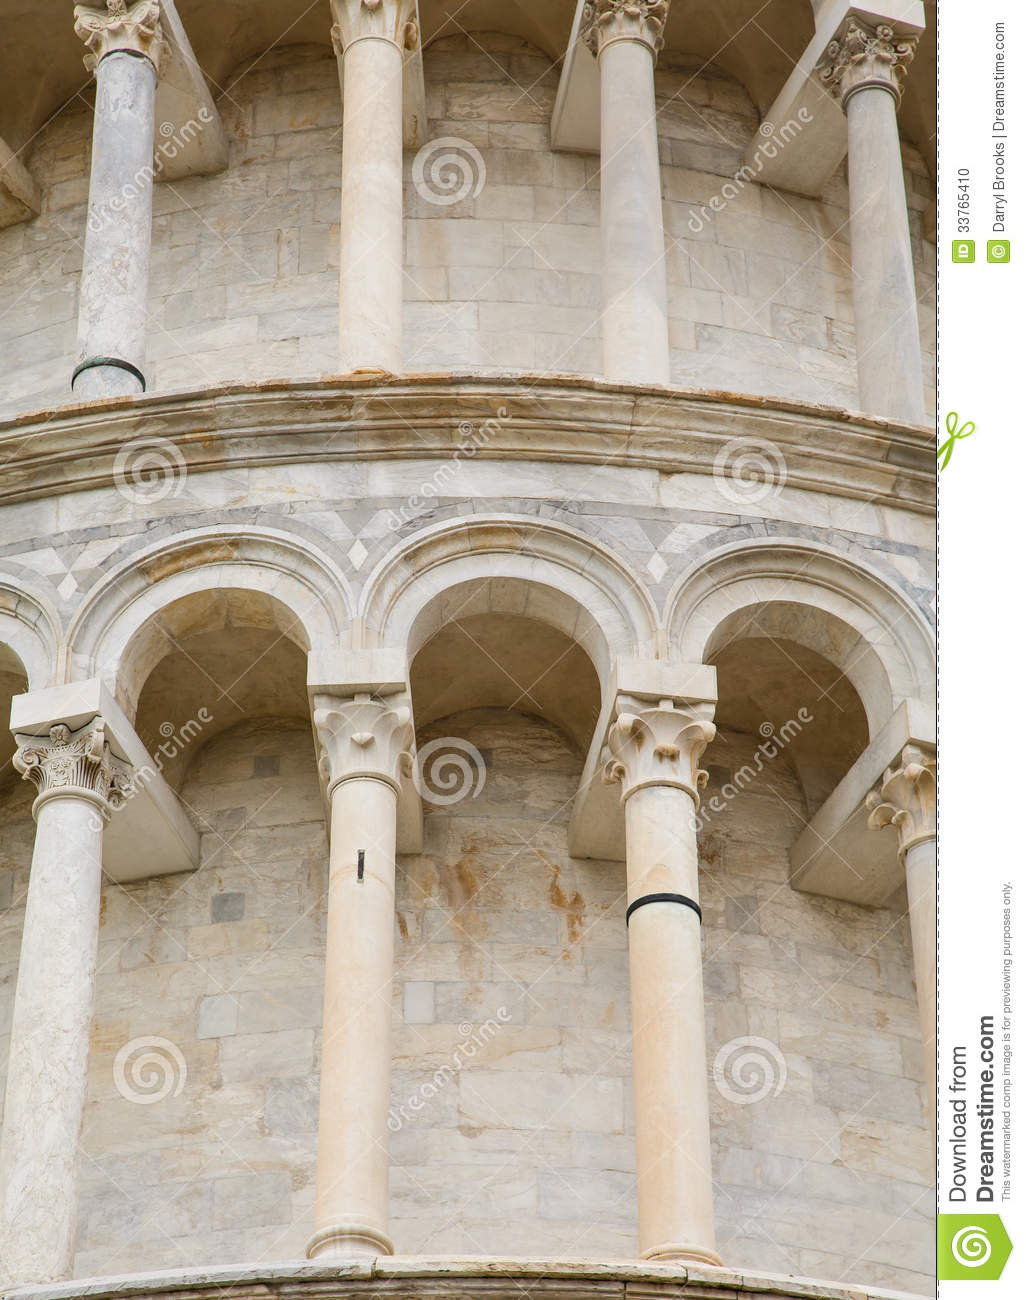 Columns And Arches On Tower In Pisa Stock Photo Image